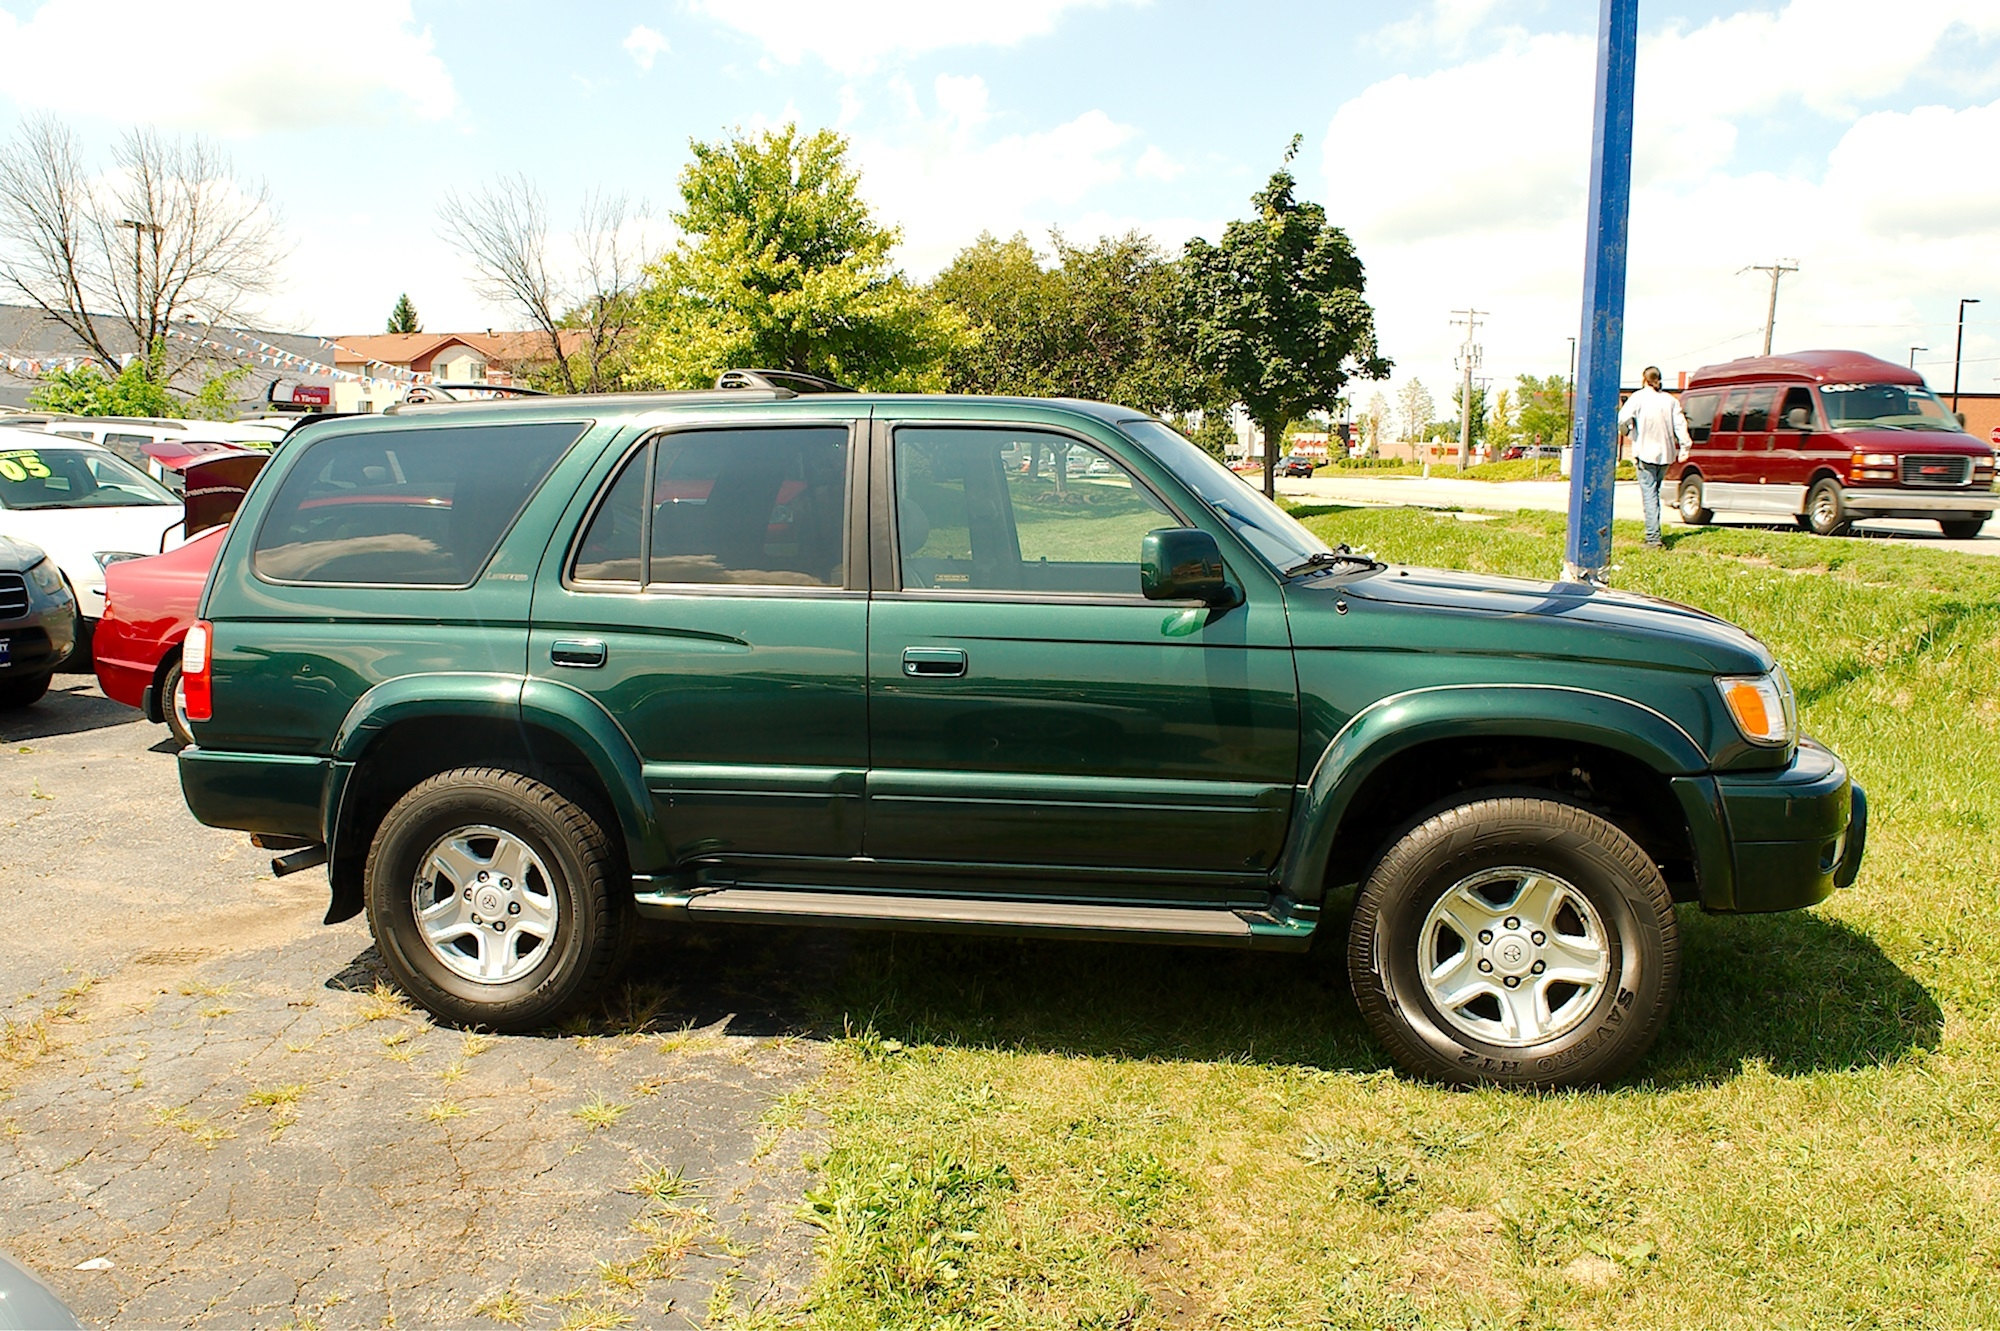 1999 Toyota 4Runner Green 4X4 Limited SUV Sale Bannockburn Barrington Beach Park